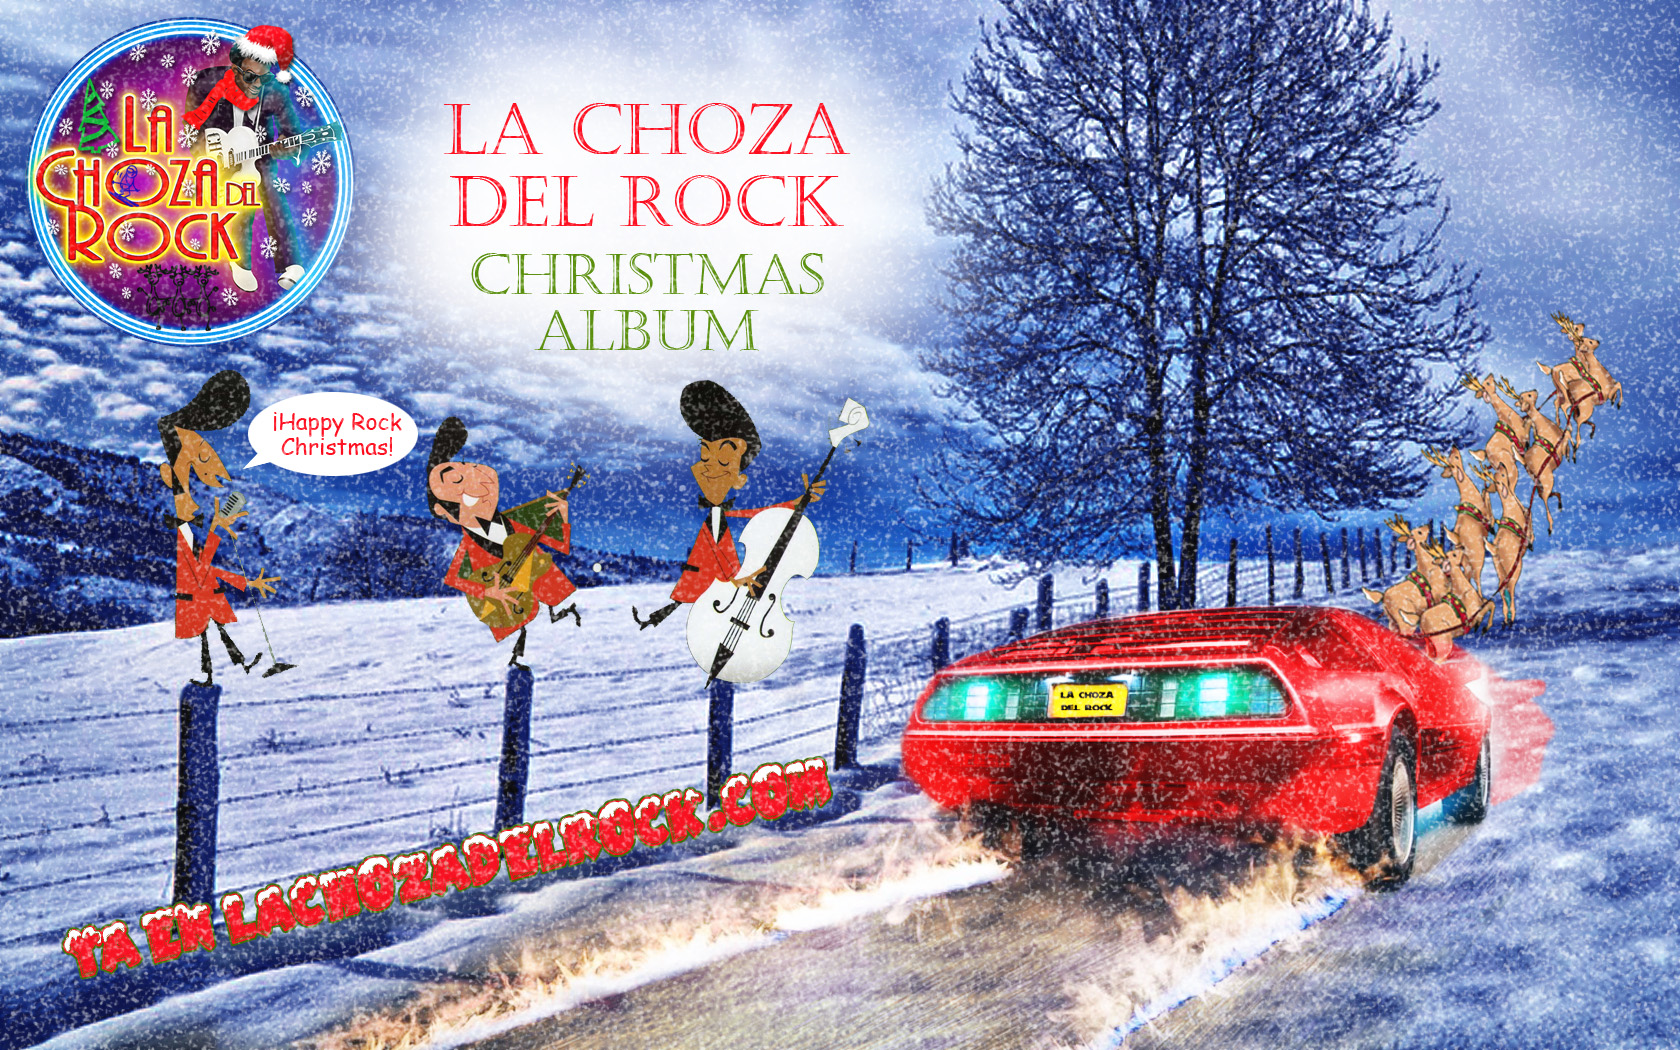 La Choza del Rock Christmas Album